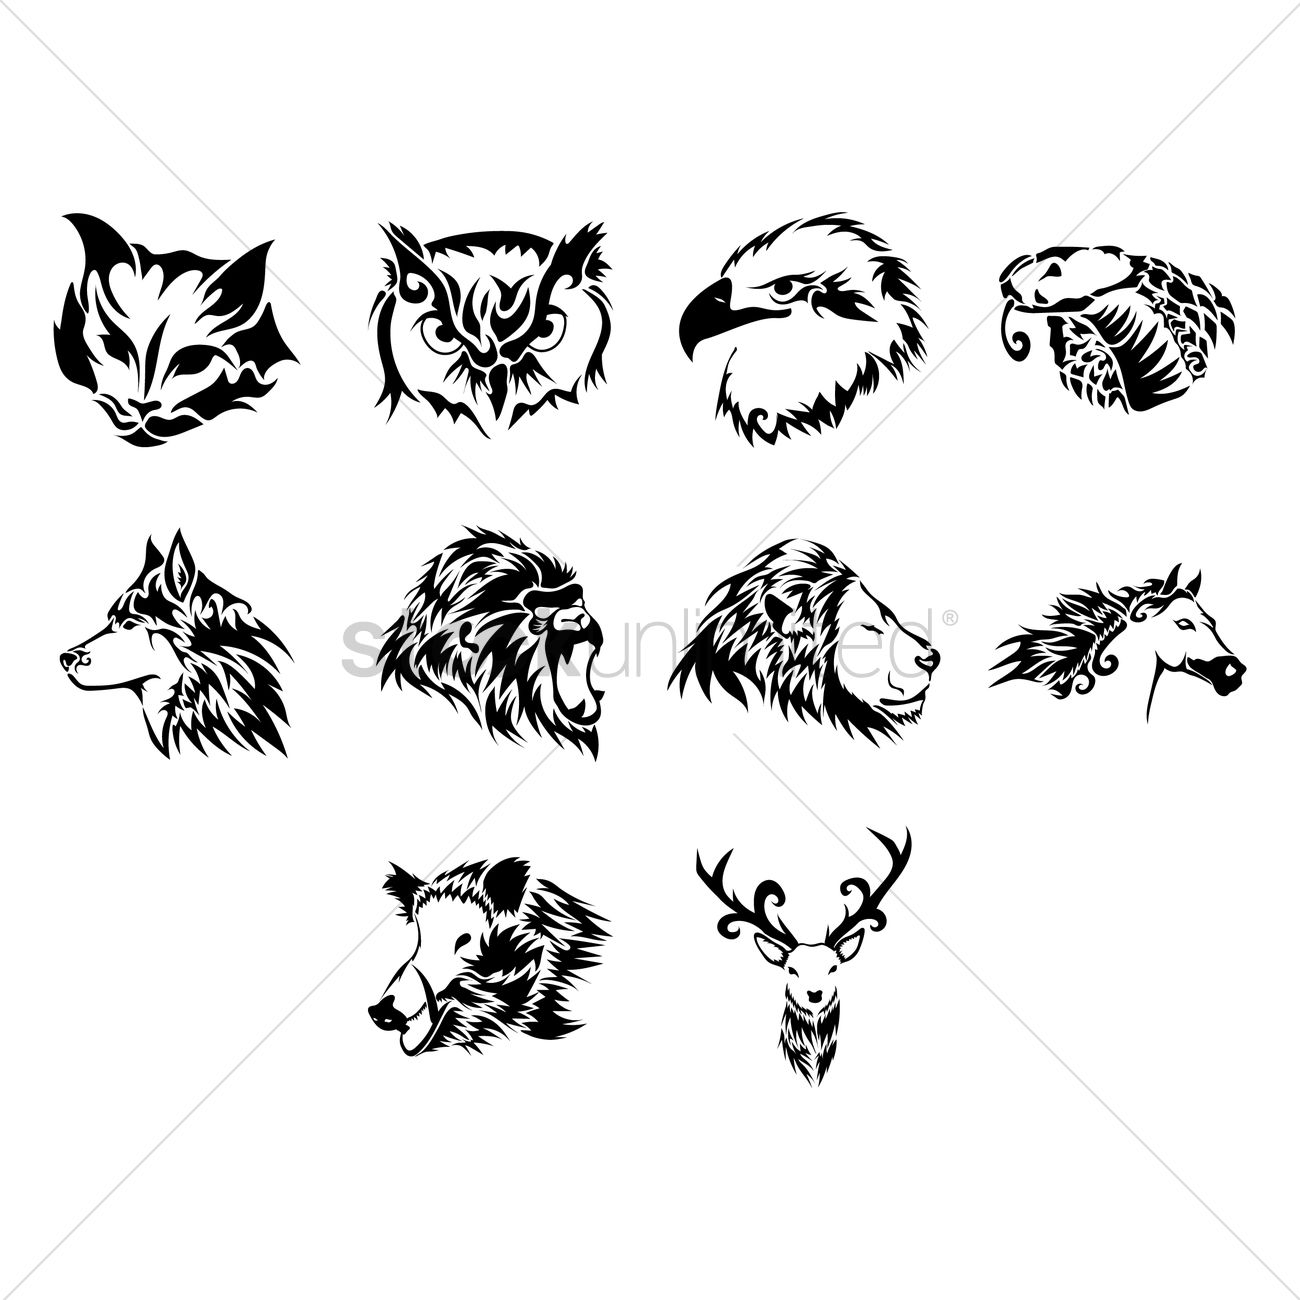 Line Drawing Animal Tattoos : Animal tattoo design vector image stockunlimited